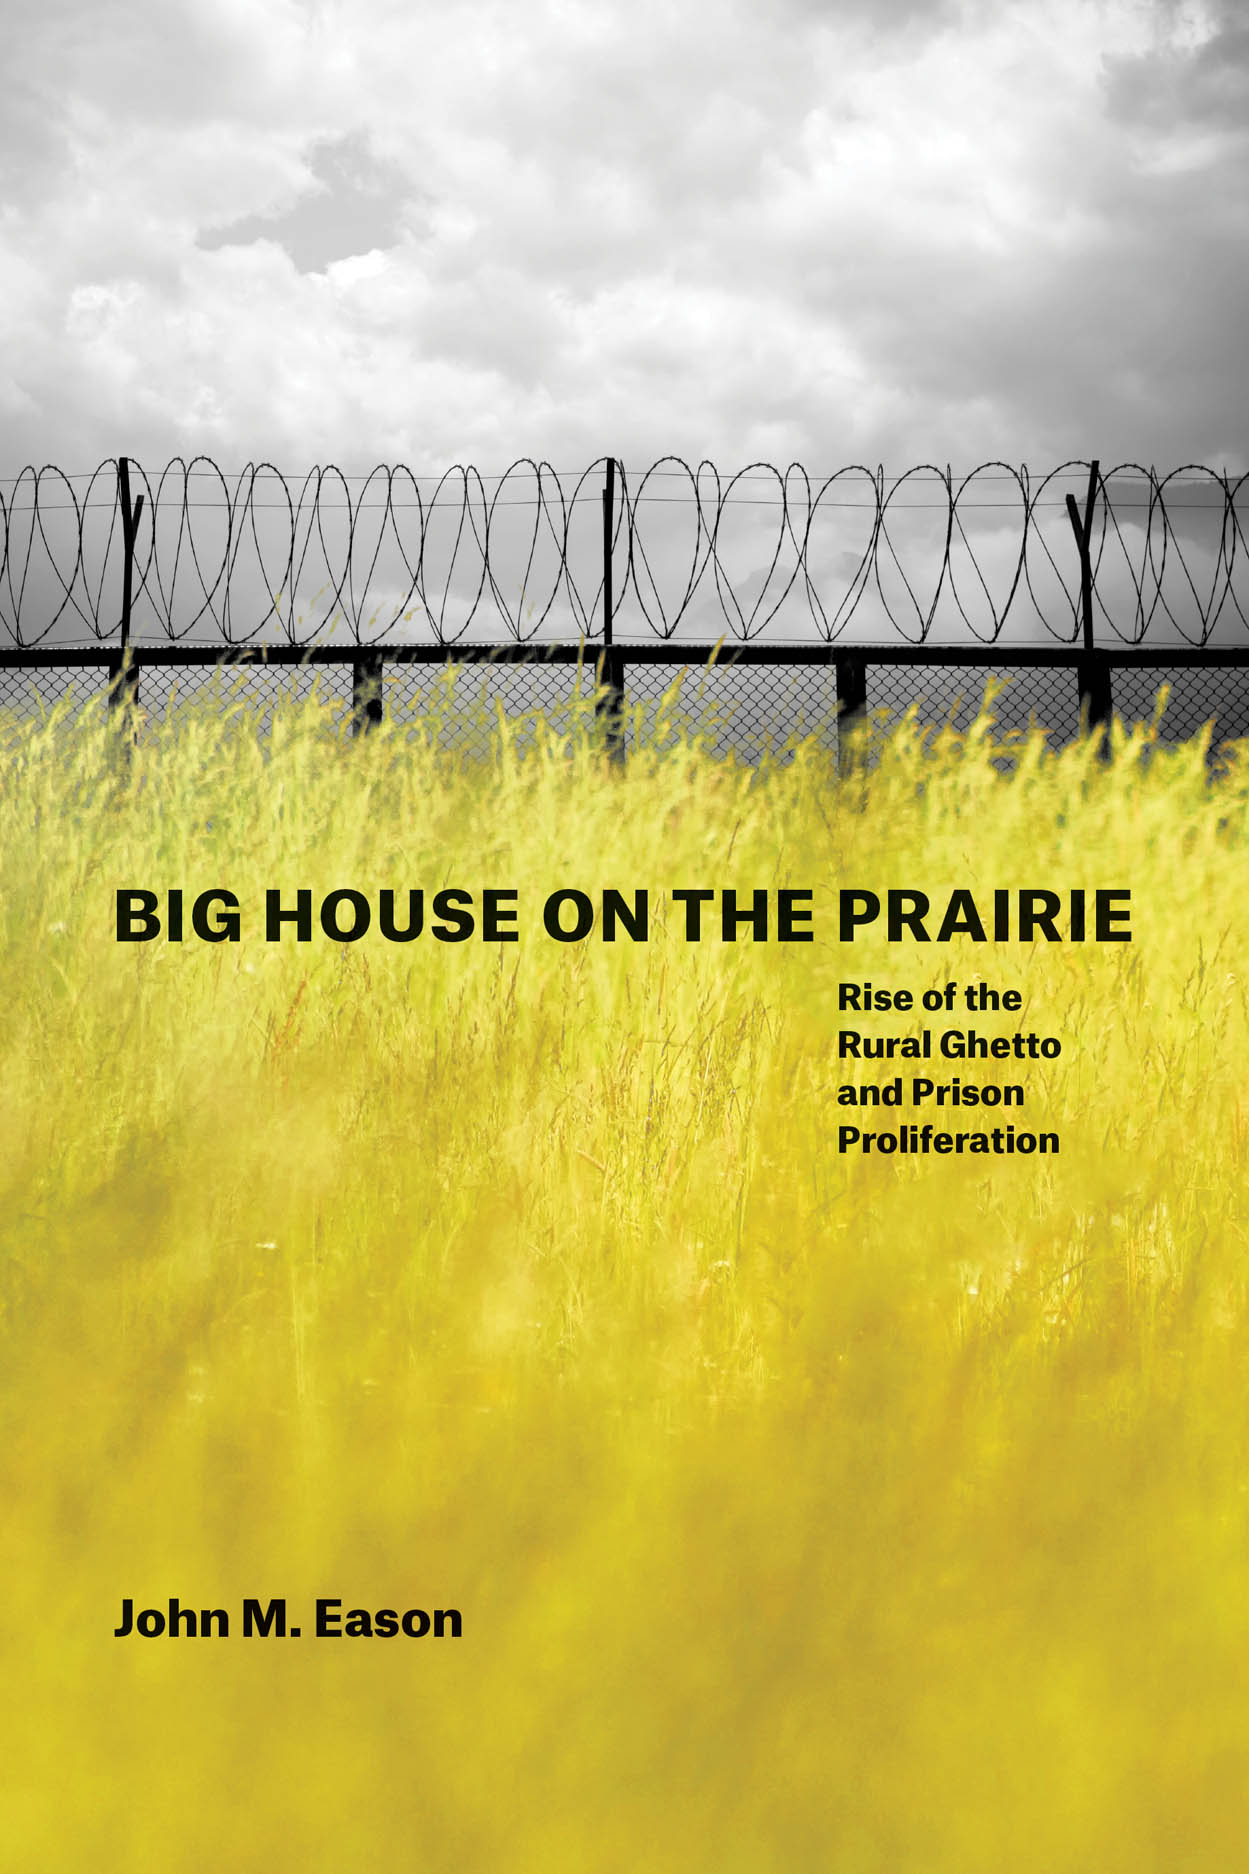 Big House on the Prairie